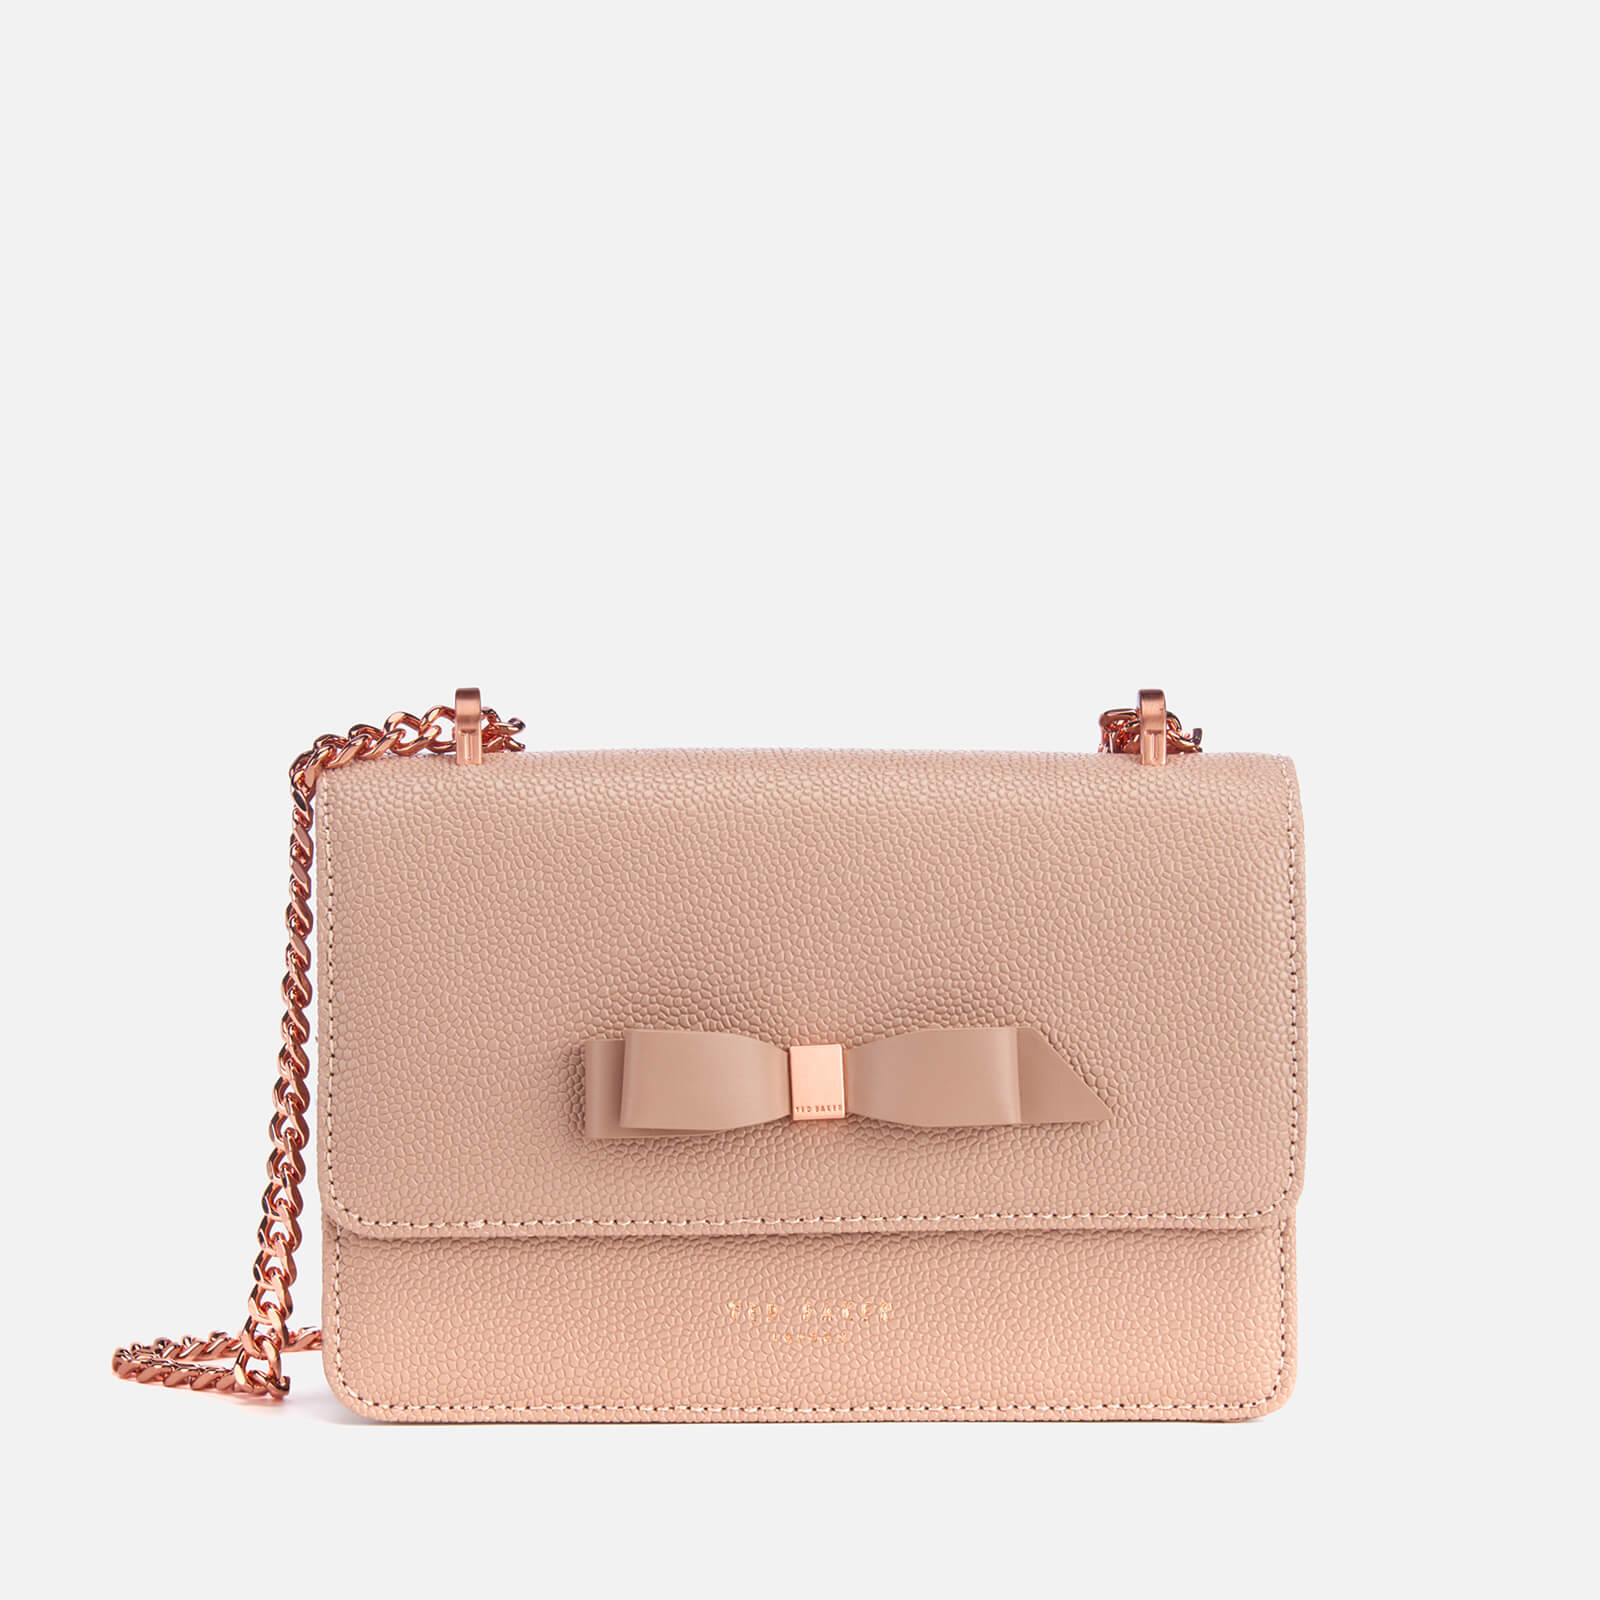 9ffa0500a Ted Baker Women s Jayllaa Bow Detail Micro Cross Body Bag - Taupe Clothing